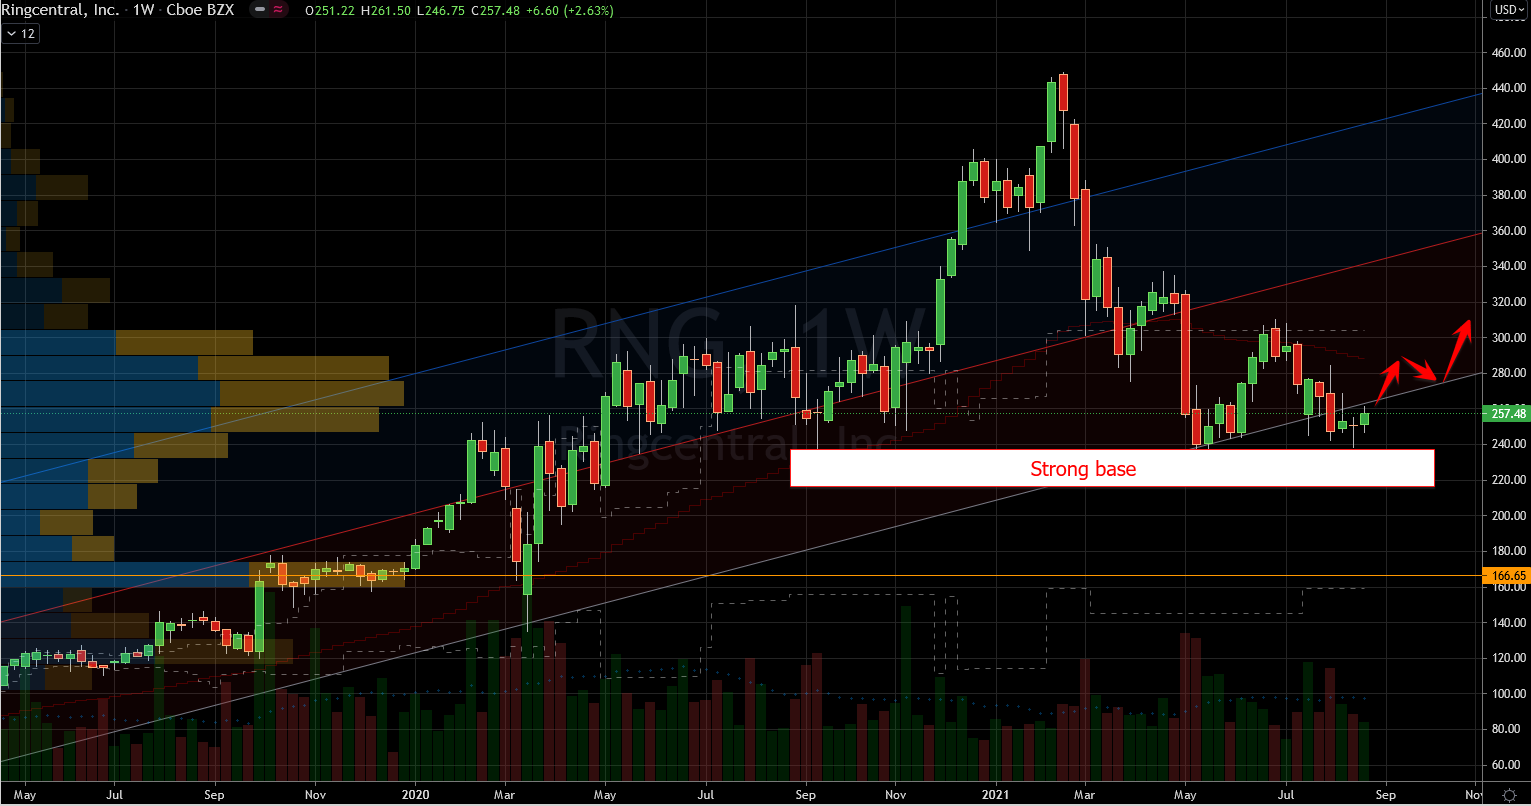 Stocks to buy: RingCentral (RNG) Stock Chart Showing Potential Base